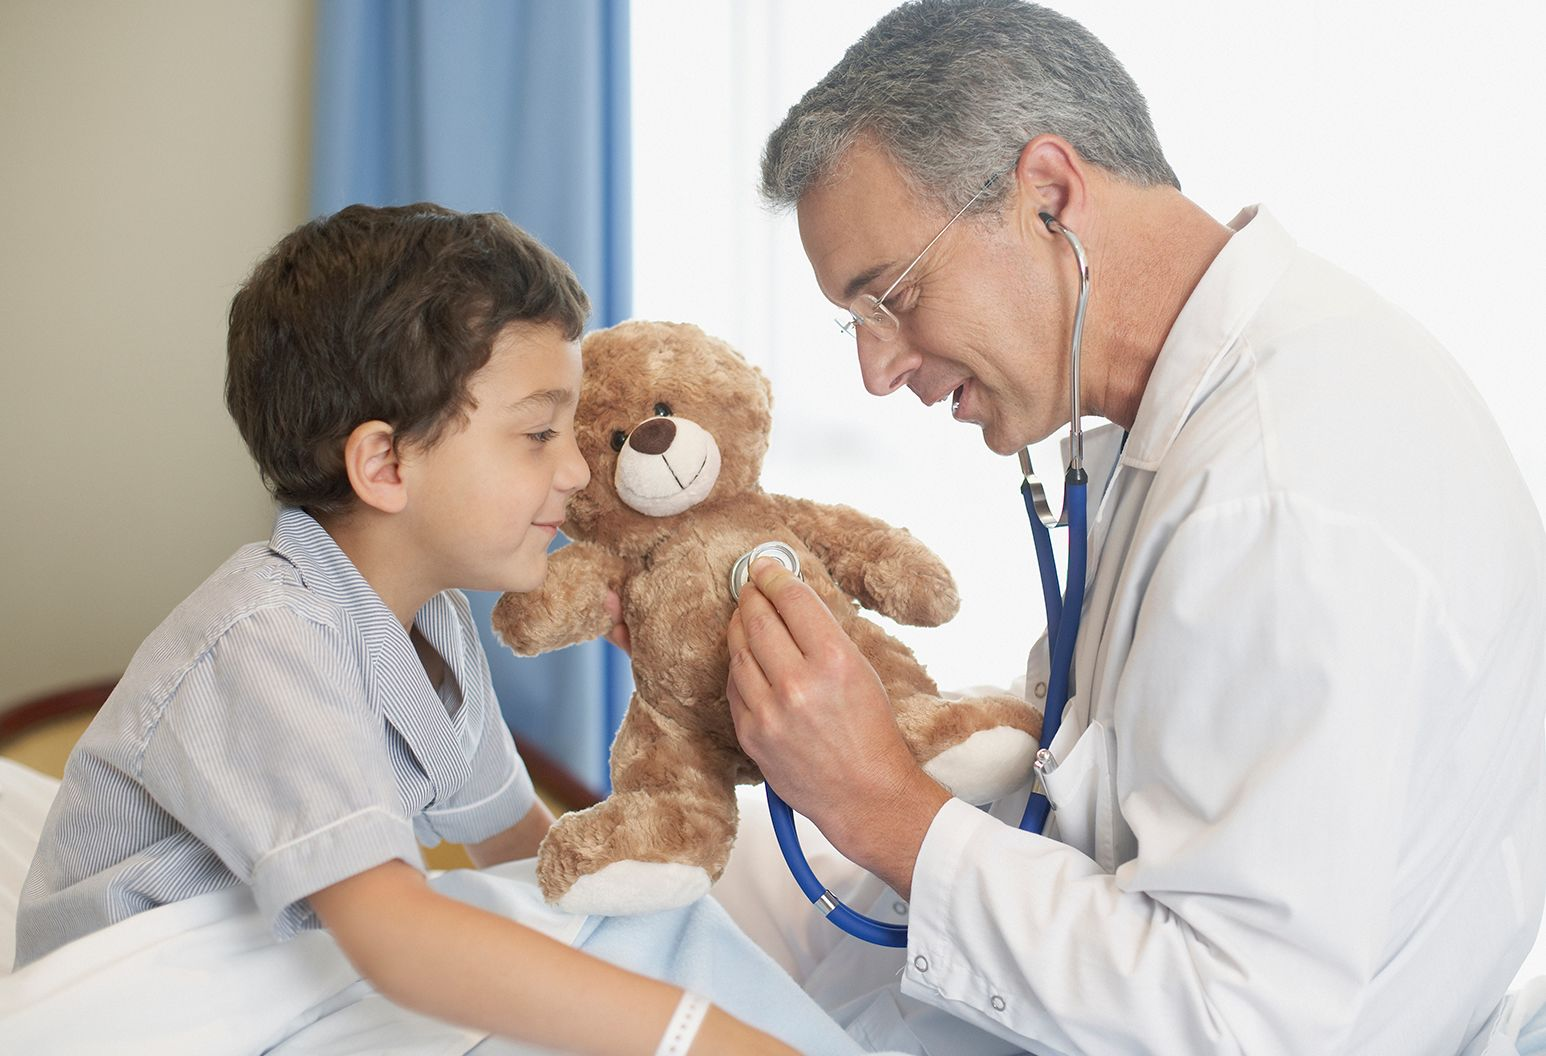 Doctor examines young boy's teddy bear in hospital room